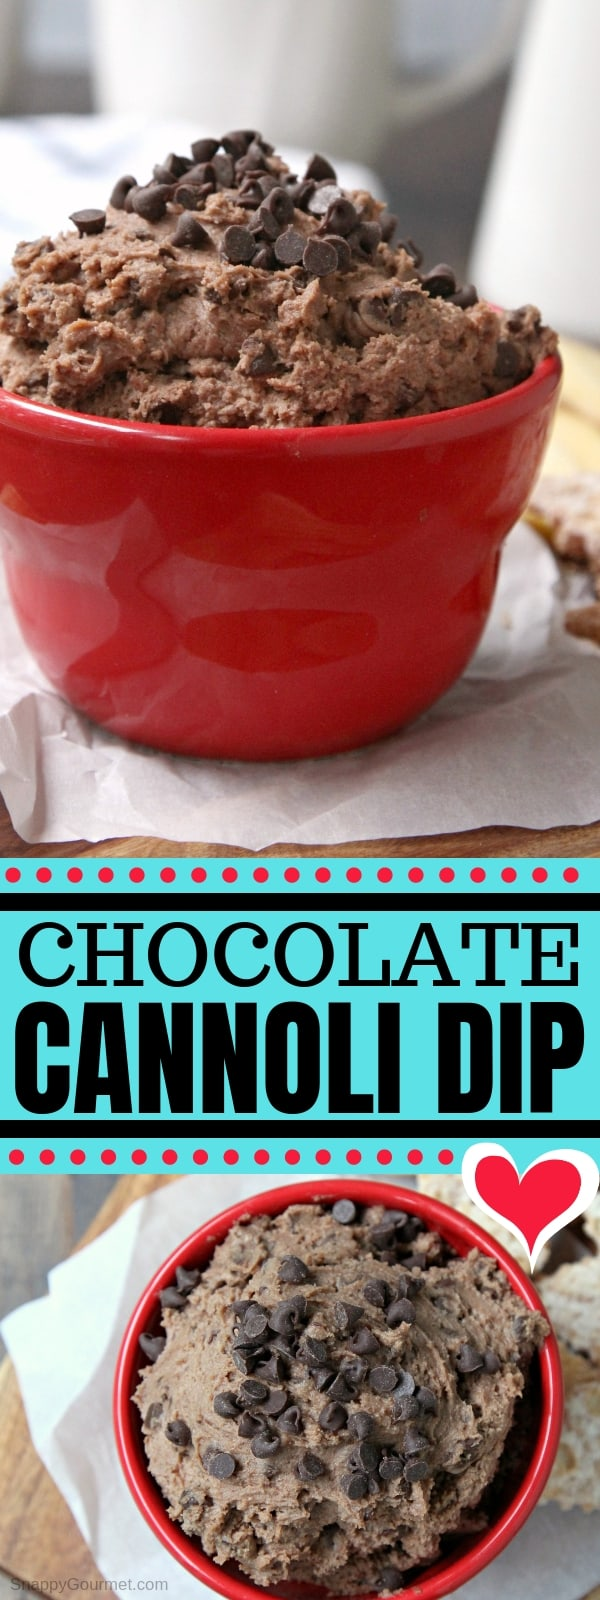 Chocolate Cannoli Dip - an easy cannoli dip recipe! Learn how to make cannoli dip for a fun homemade dessert based on the Italian pastry. The best crowd pleaser and perfect for parties, potlucks, and fun treat! #Cannoli #Italian #Chocolate #SnappyGourmet #Dessert #Homemade #Dip #Potluck #PartyFood